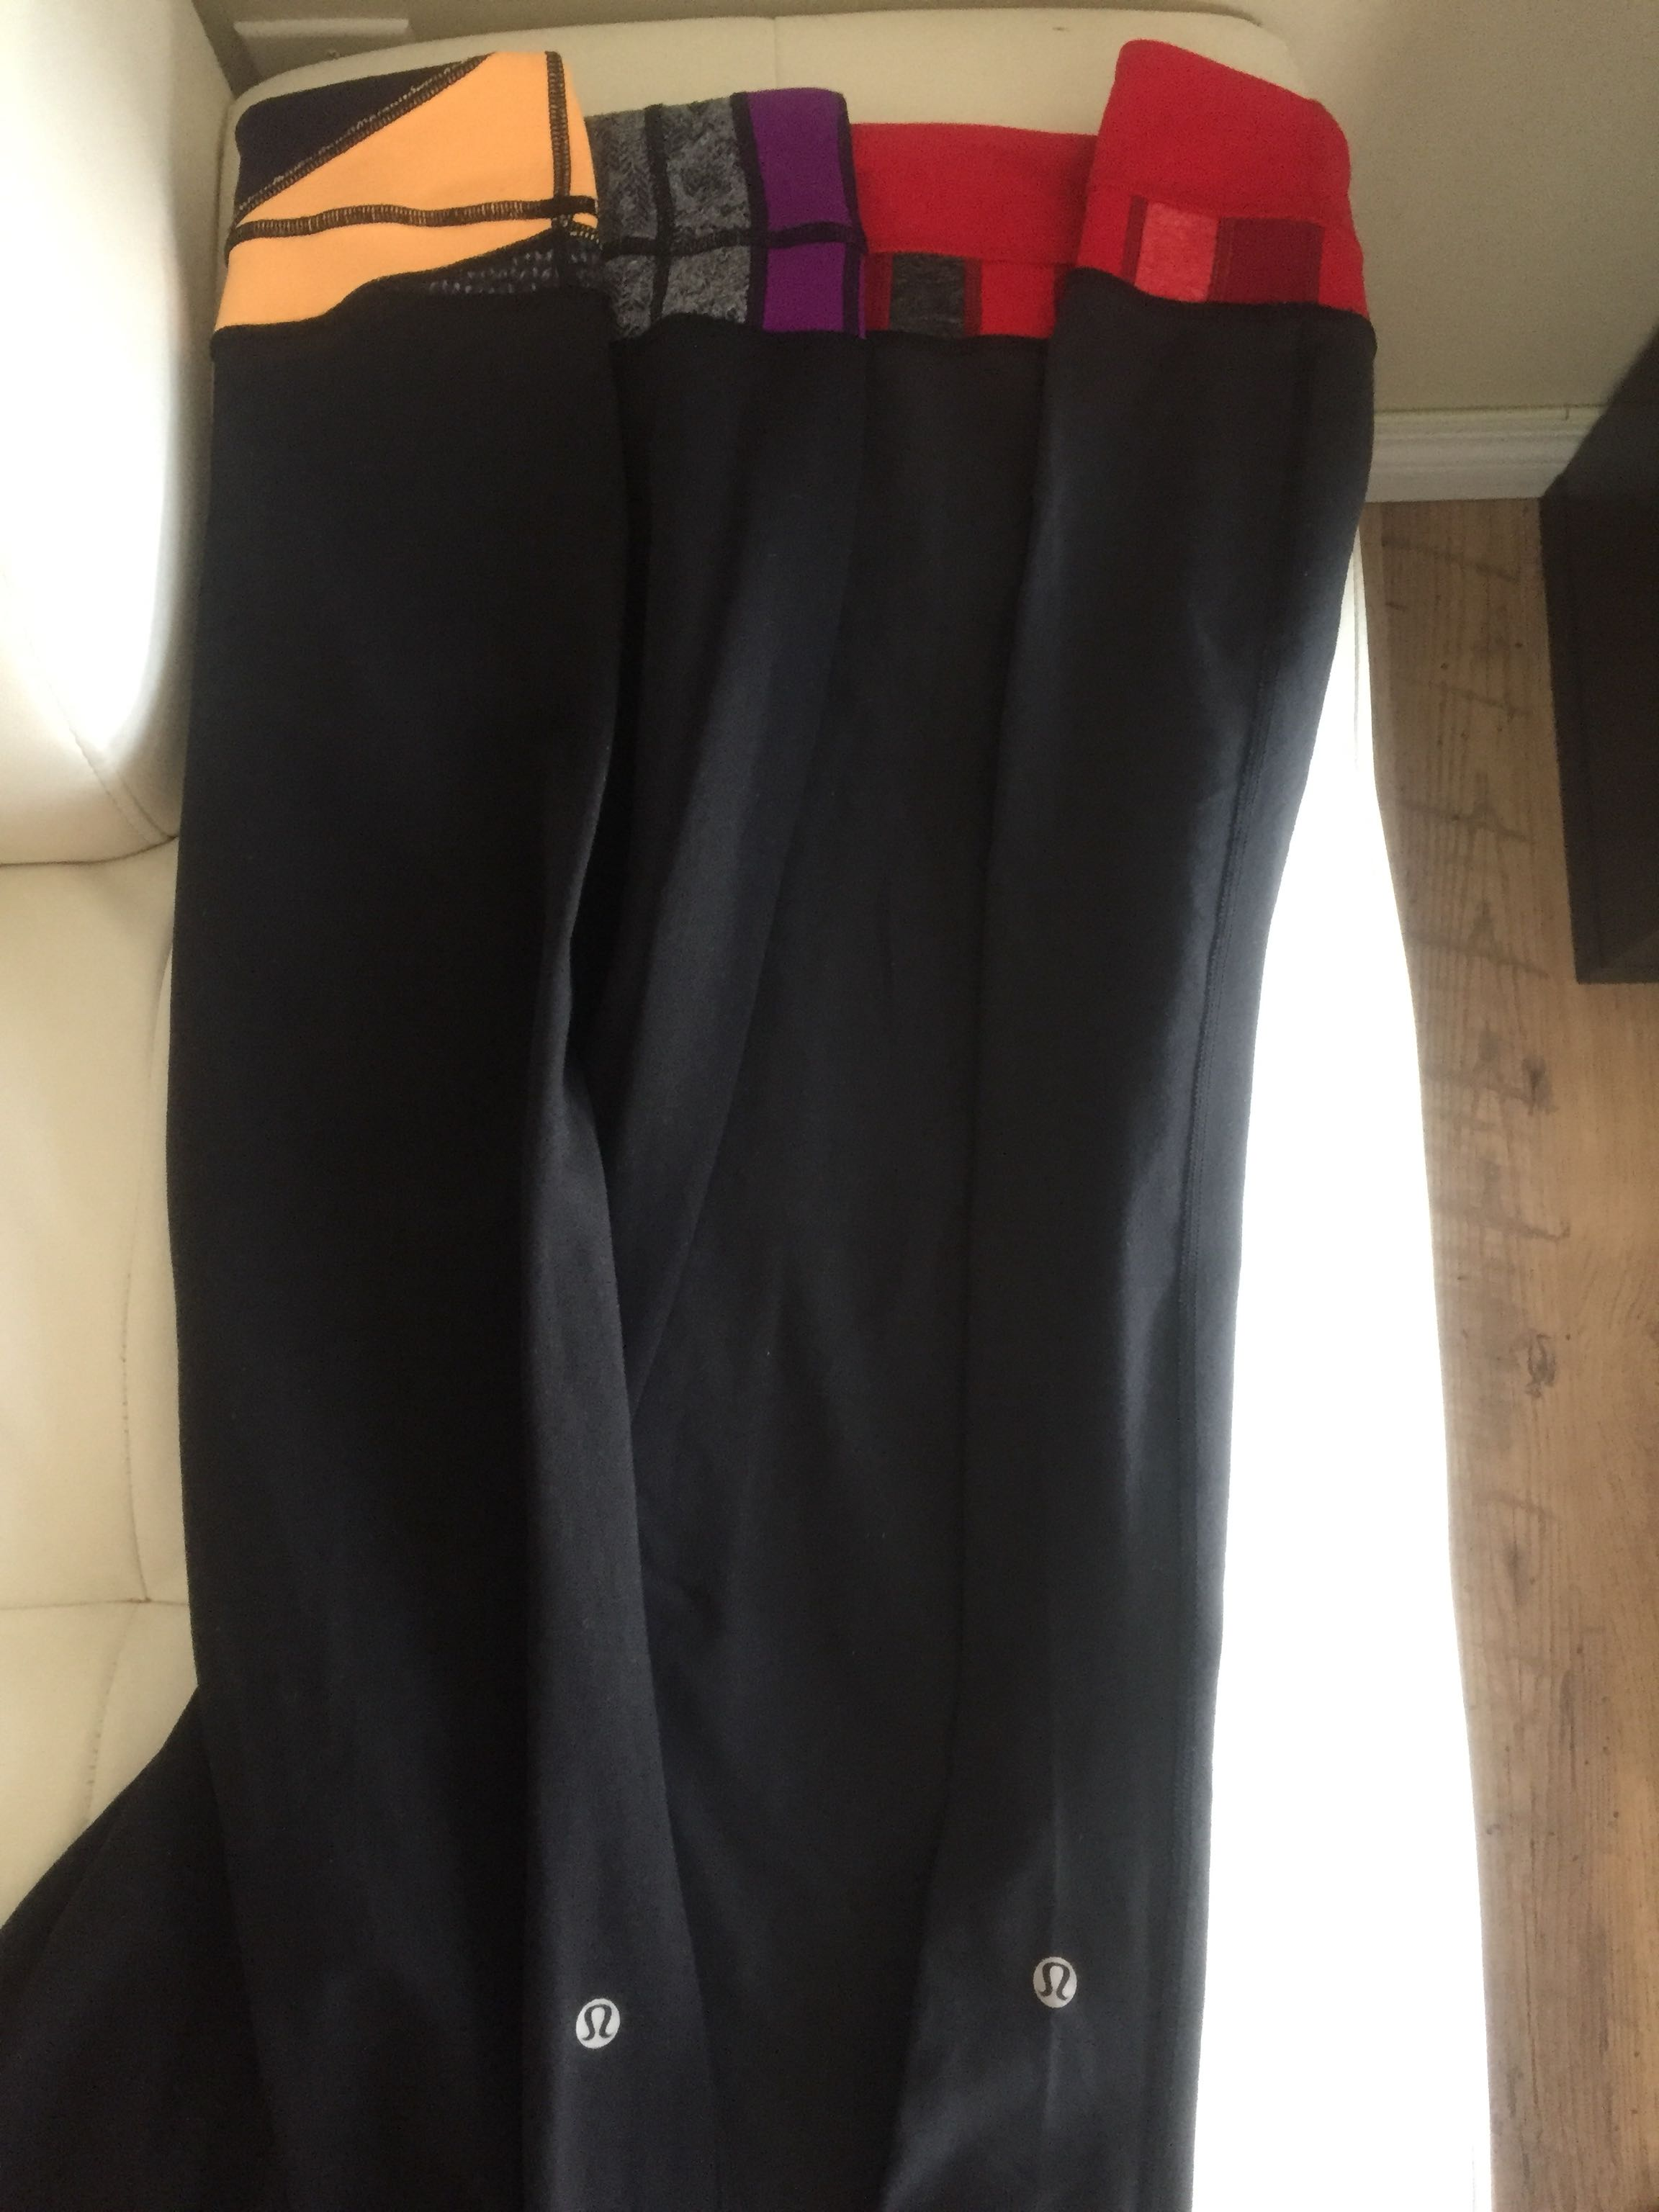 Lululemon size 6, 2 pairs of reversible groove pants EUC!!